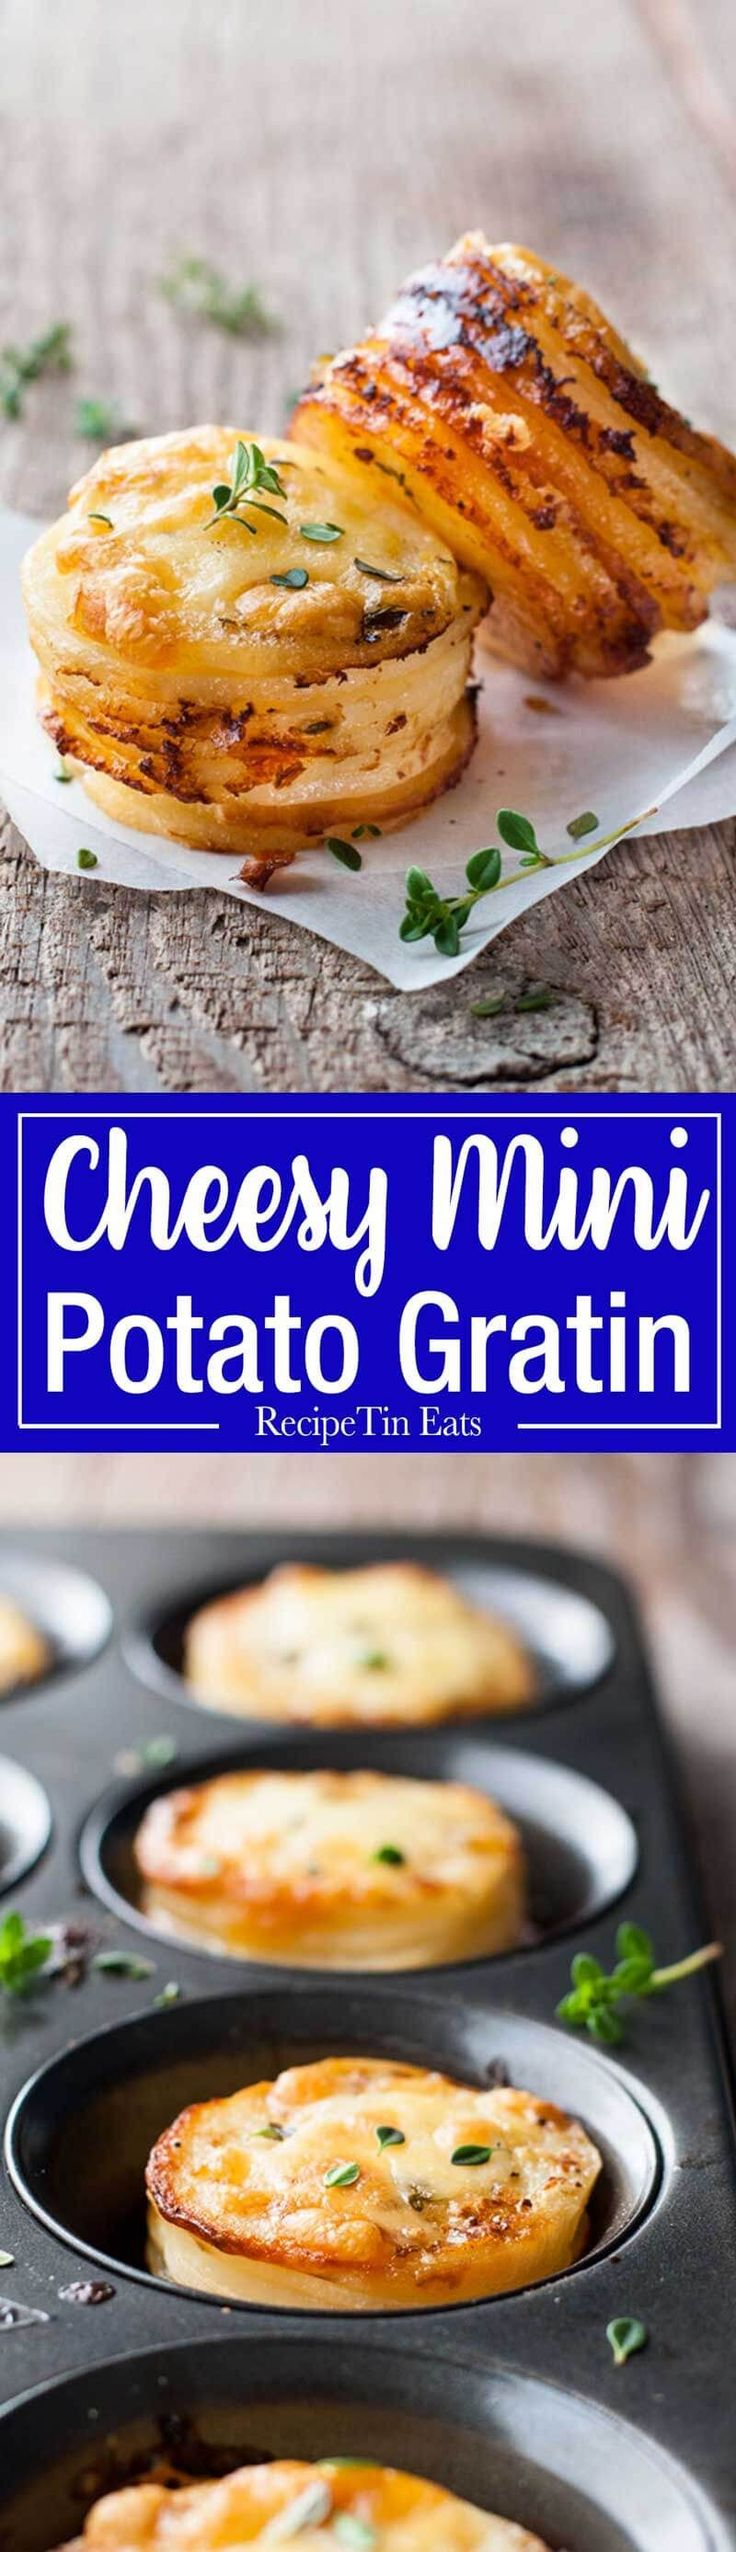 Mini Potato Gratin Stacks – great party food, breakfast with eggs or as a side for a fancy dinner. Made in a muffin tin! www.recipetineats.com